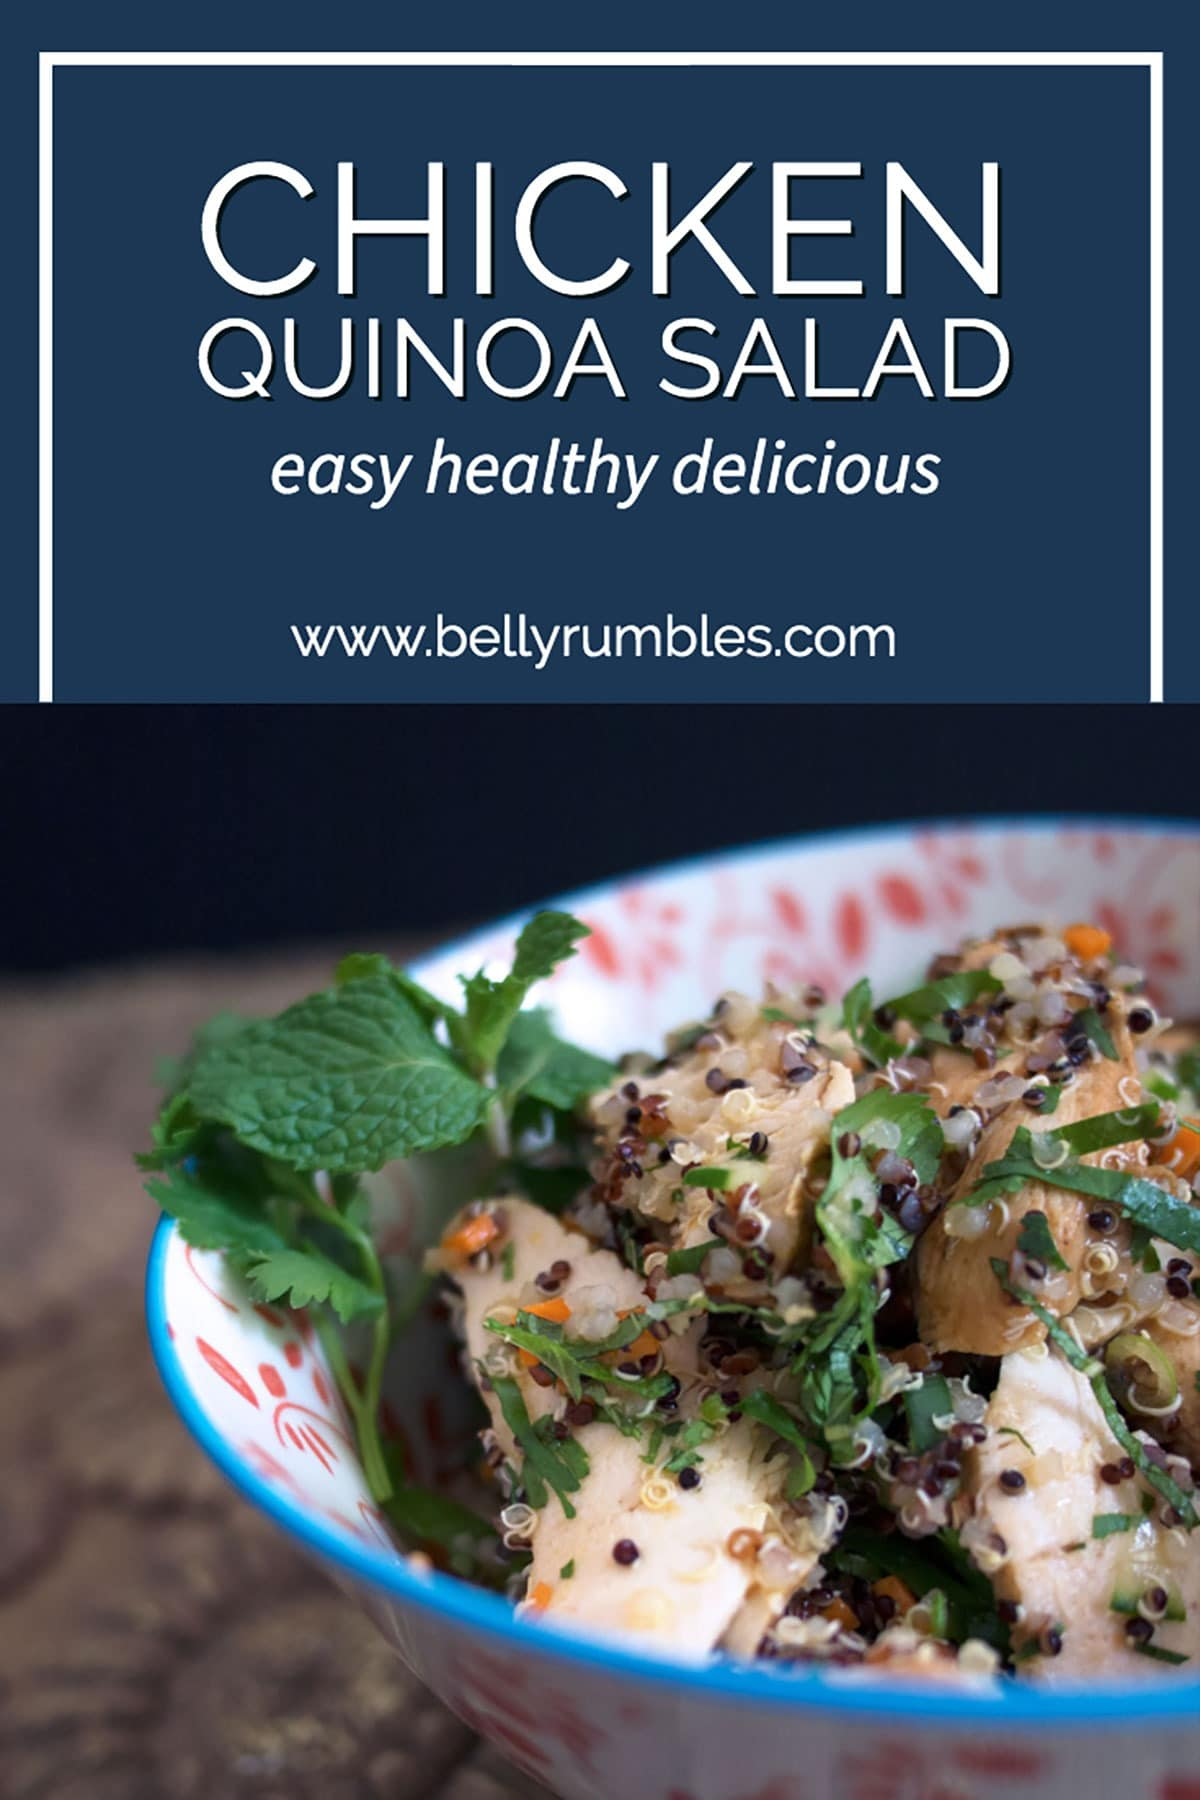 chicken quinoa salad with text